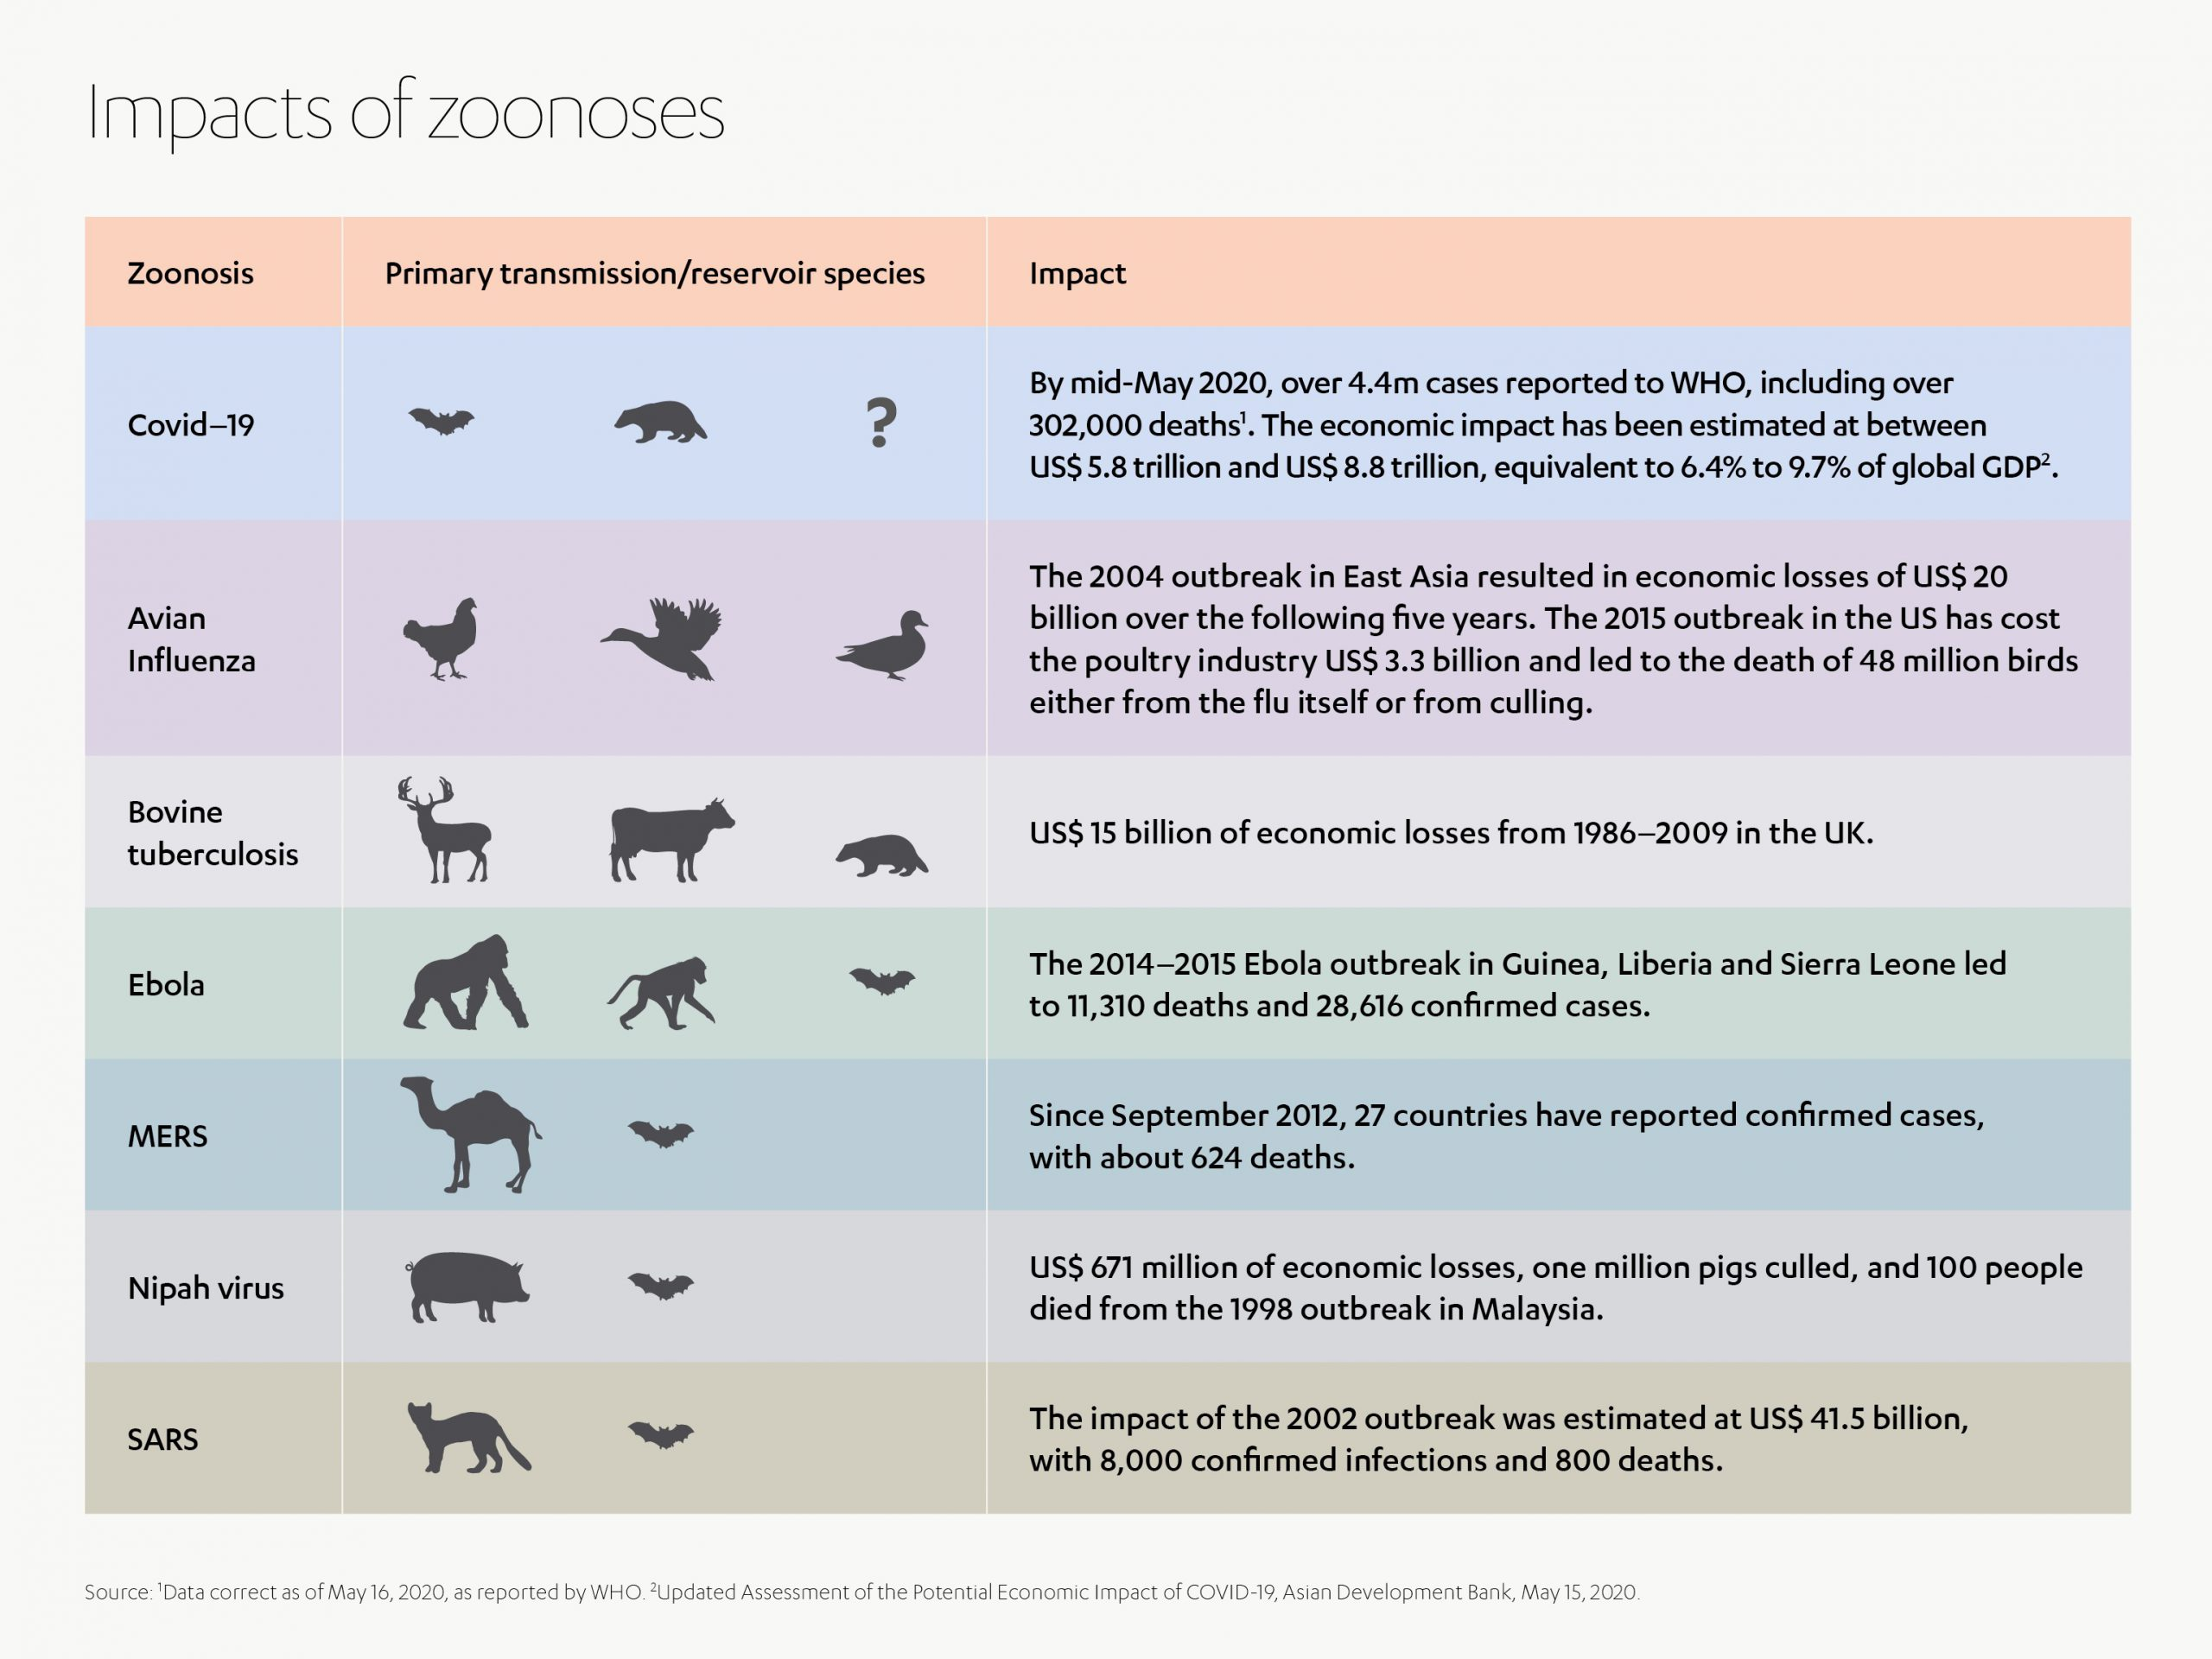 Impact of Zoonoses